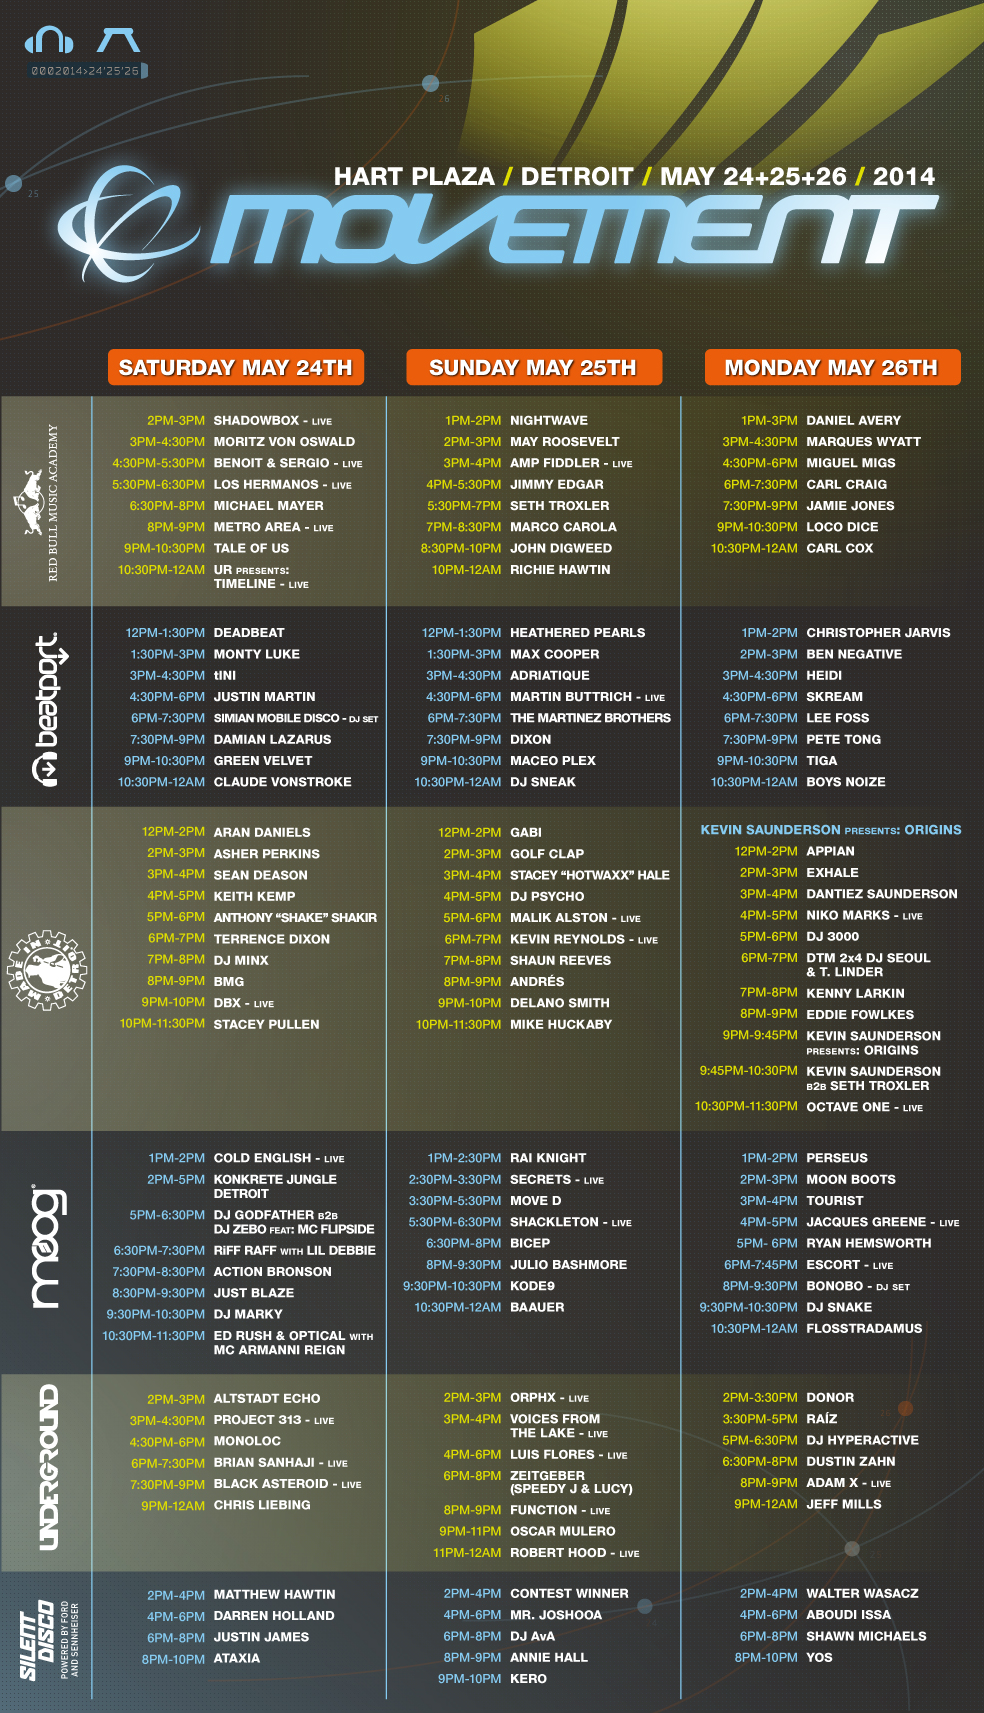 Source:http://www.movement.us/schedule (Click to Zoom)